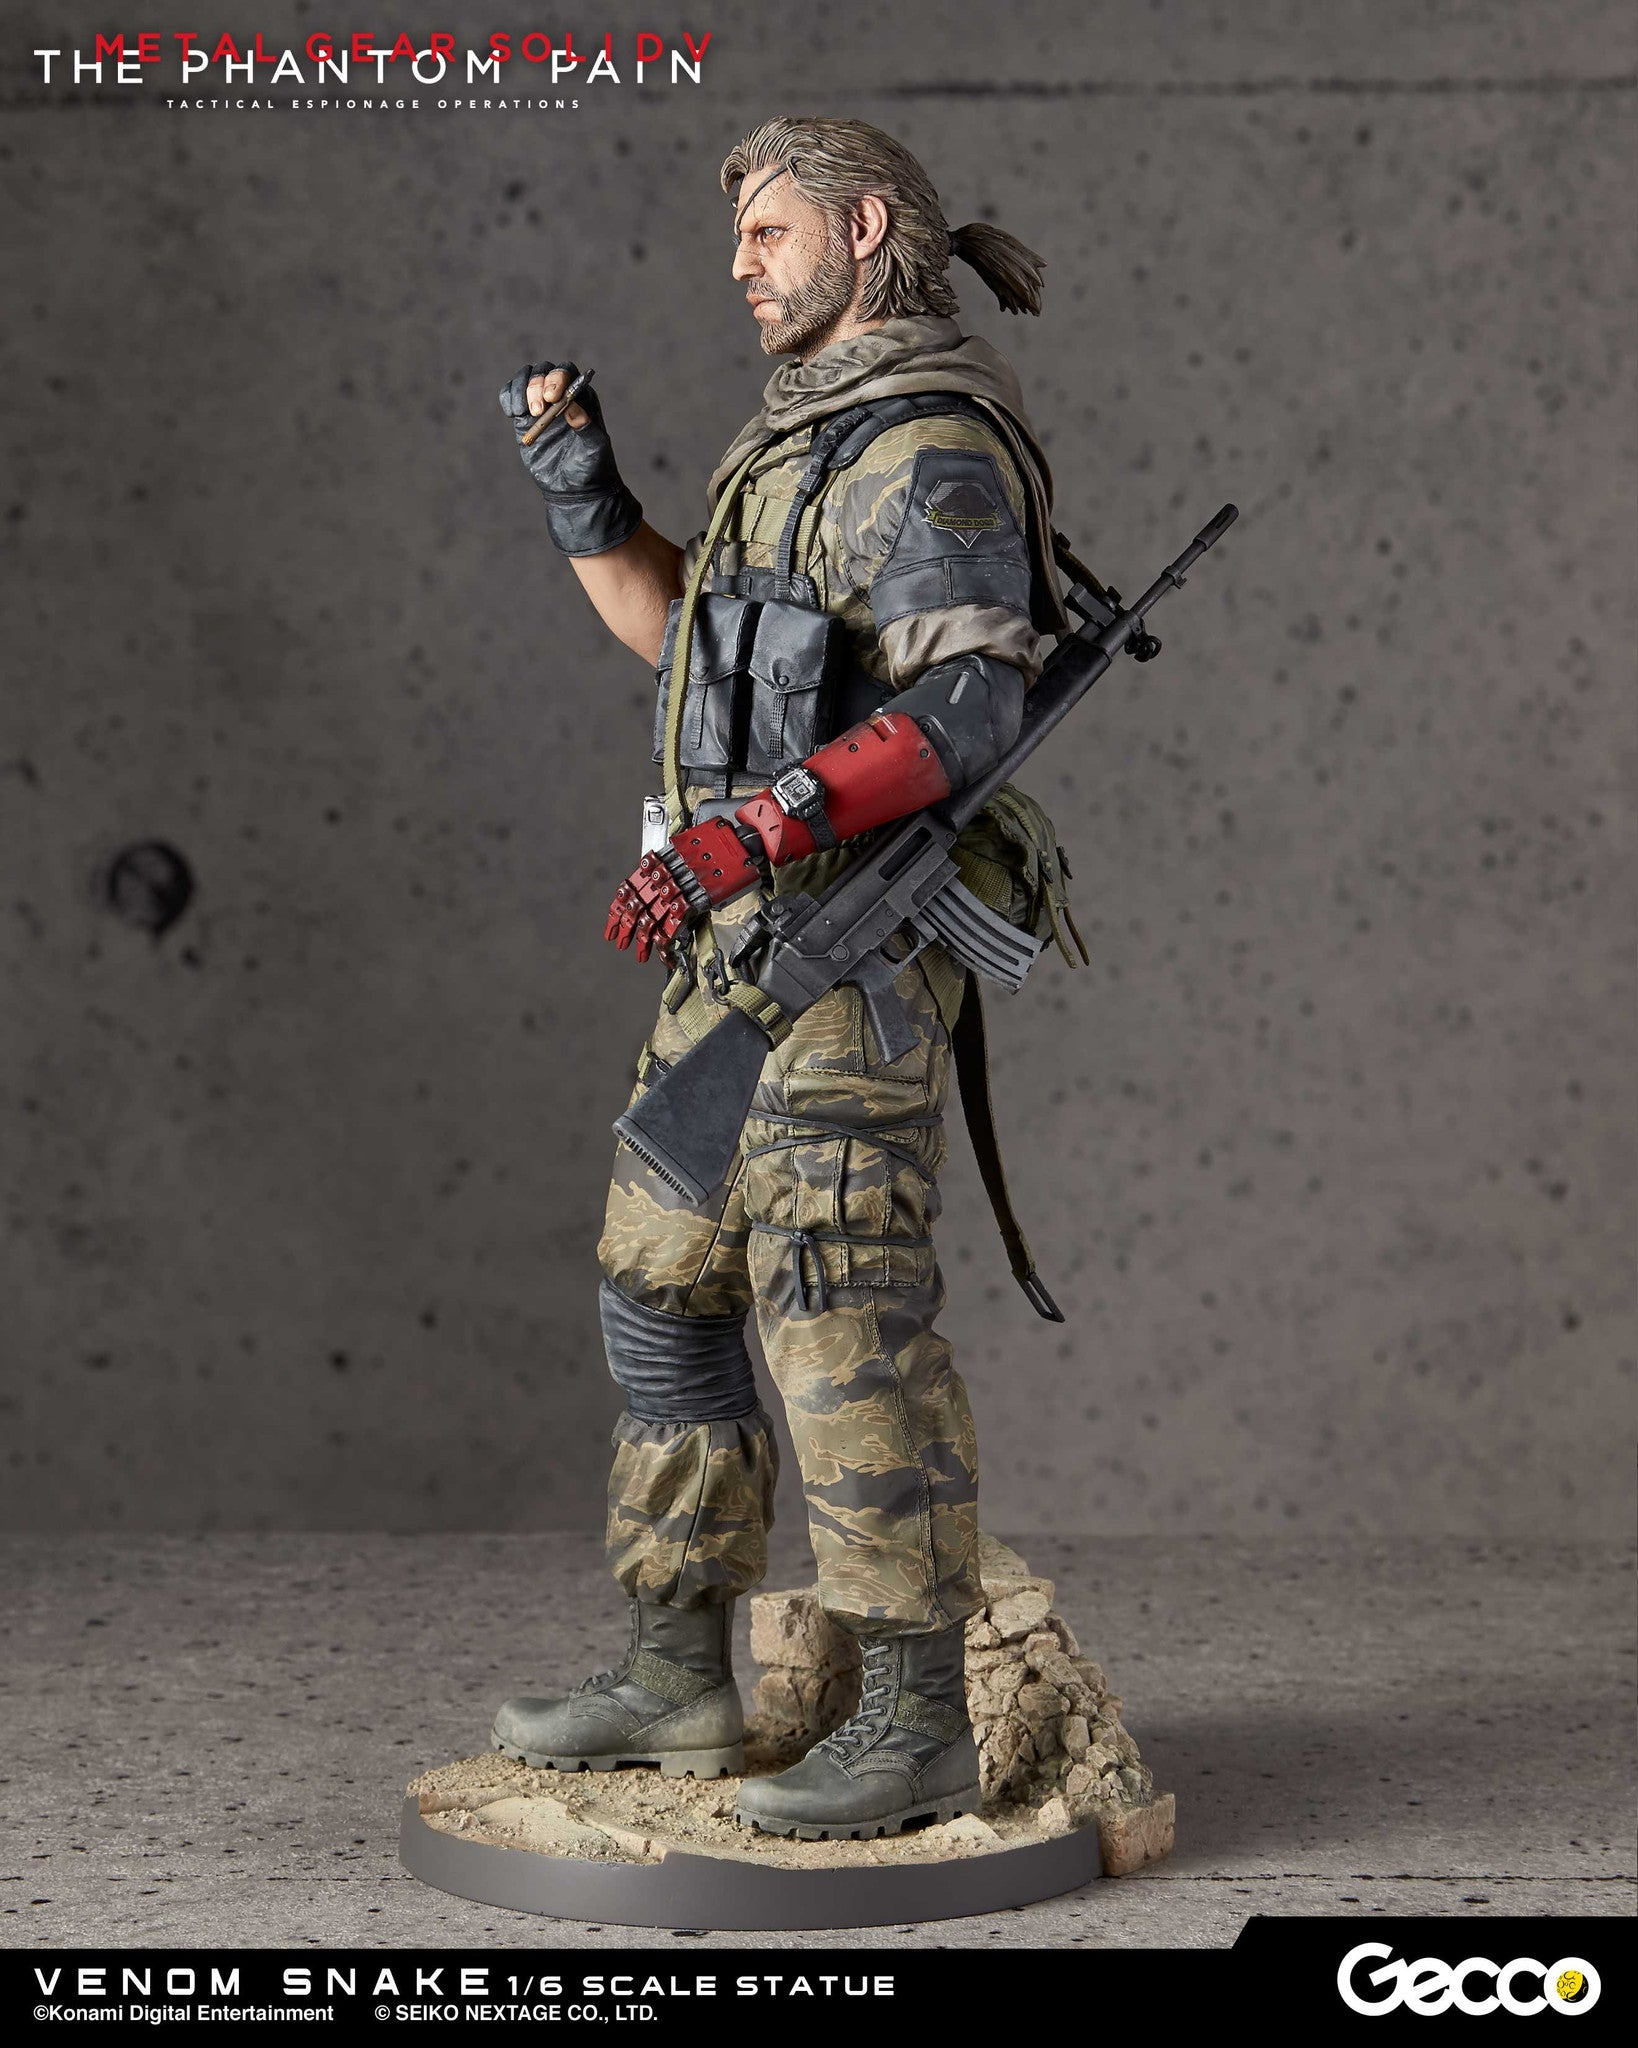 Gecco - Metal Gear Solid V: The Phantom Pain - Venom Snake 1/6 Scale Statue - Marvelous Toys - 19